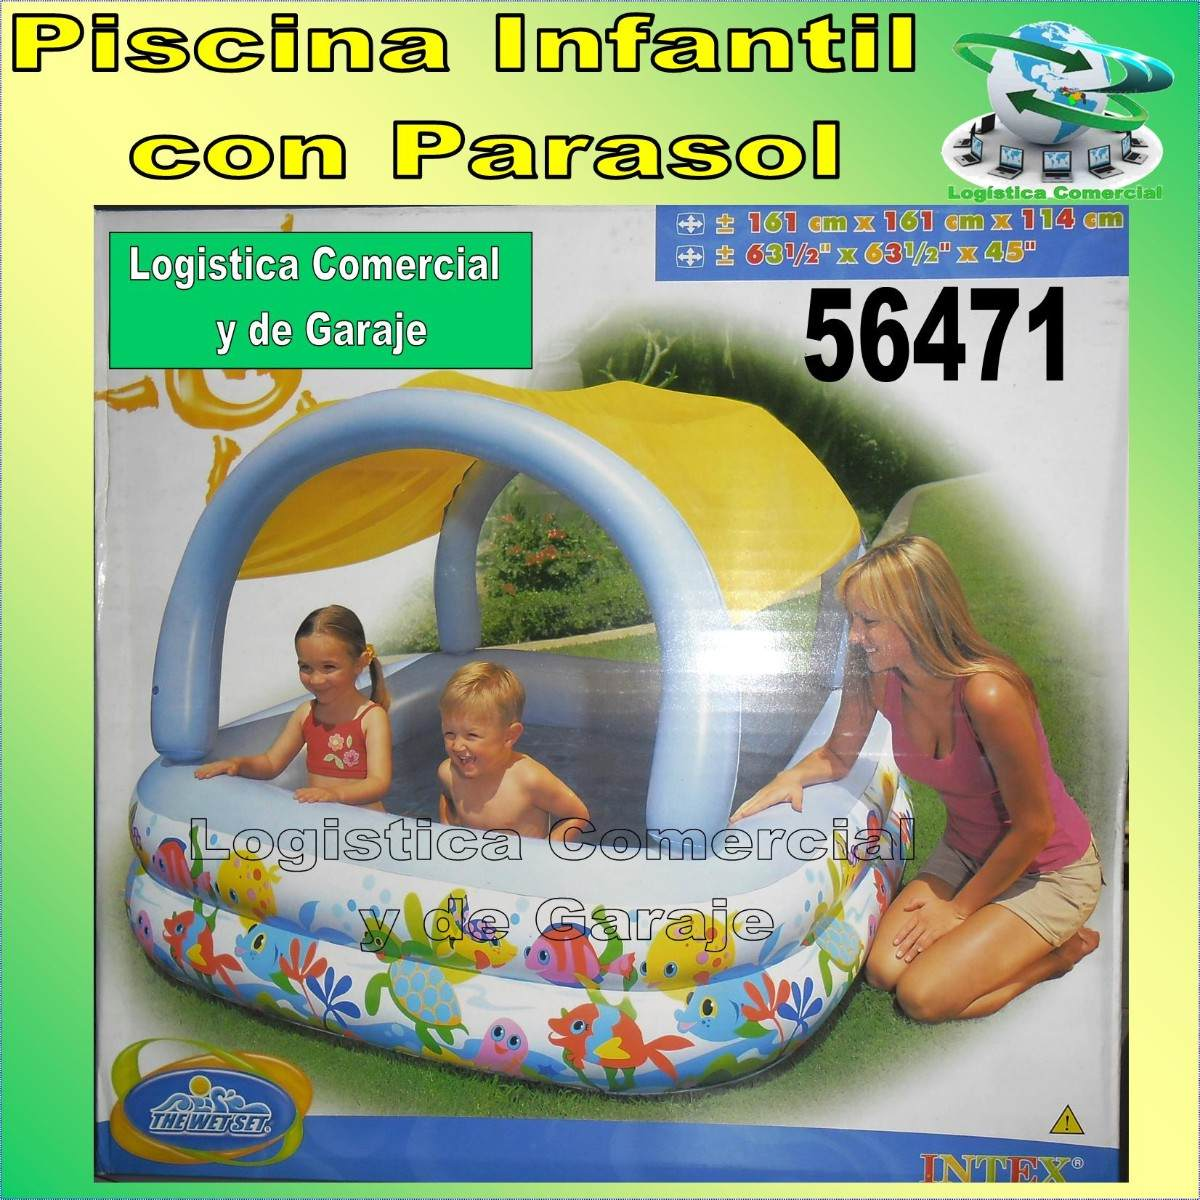 Piscina Intex Familiar Piscina Inflable Con Parasol O Techo Para Niños Intex